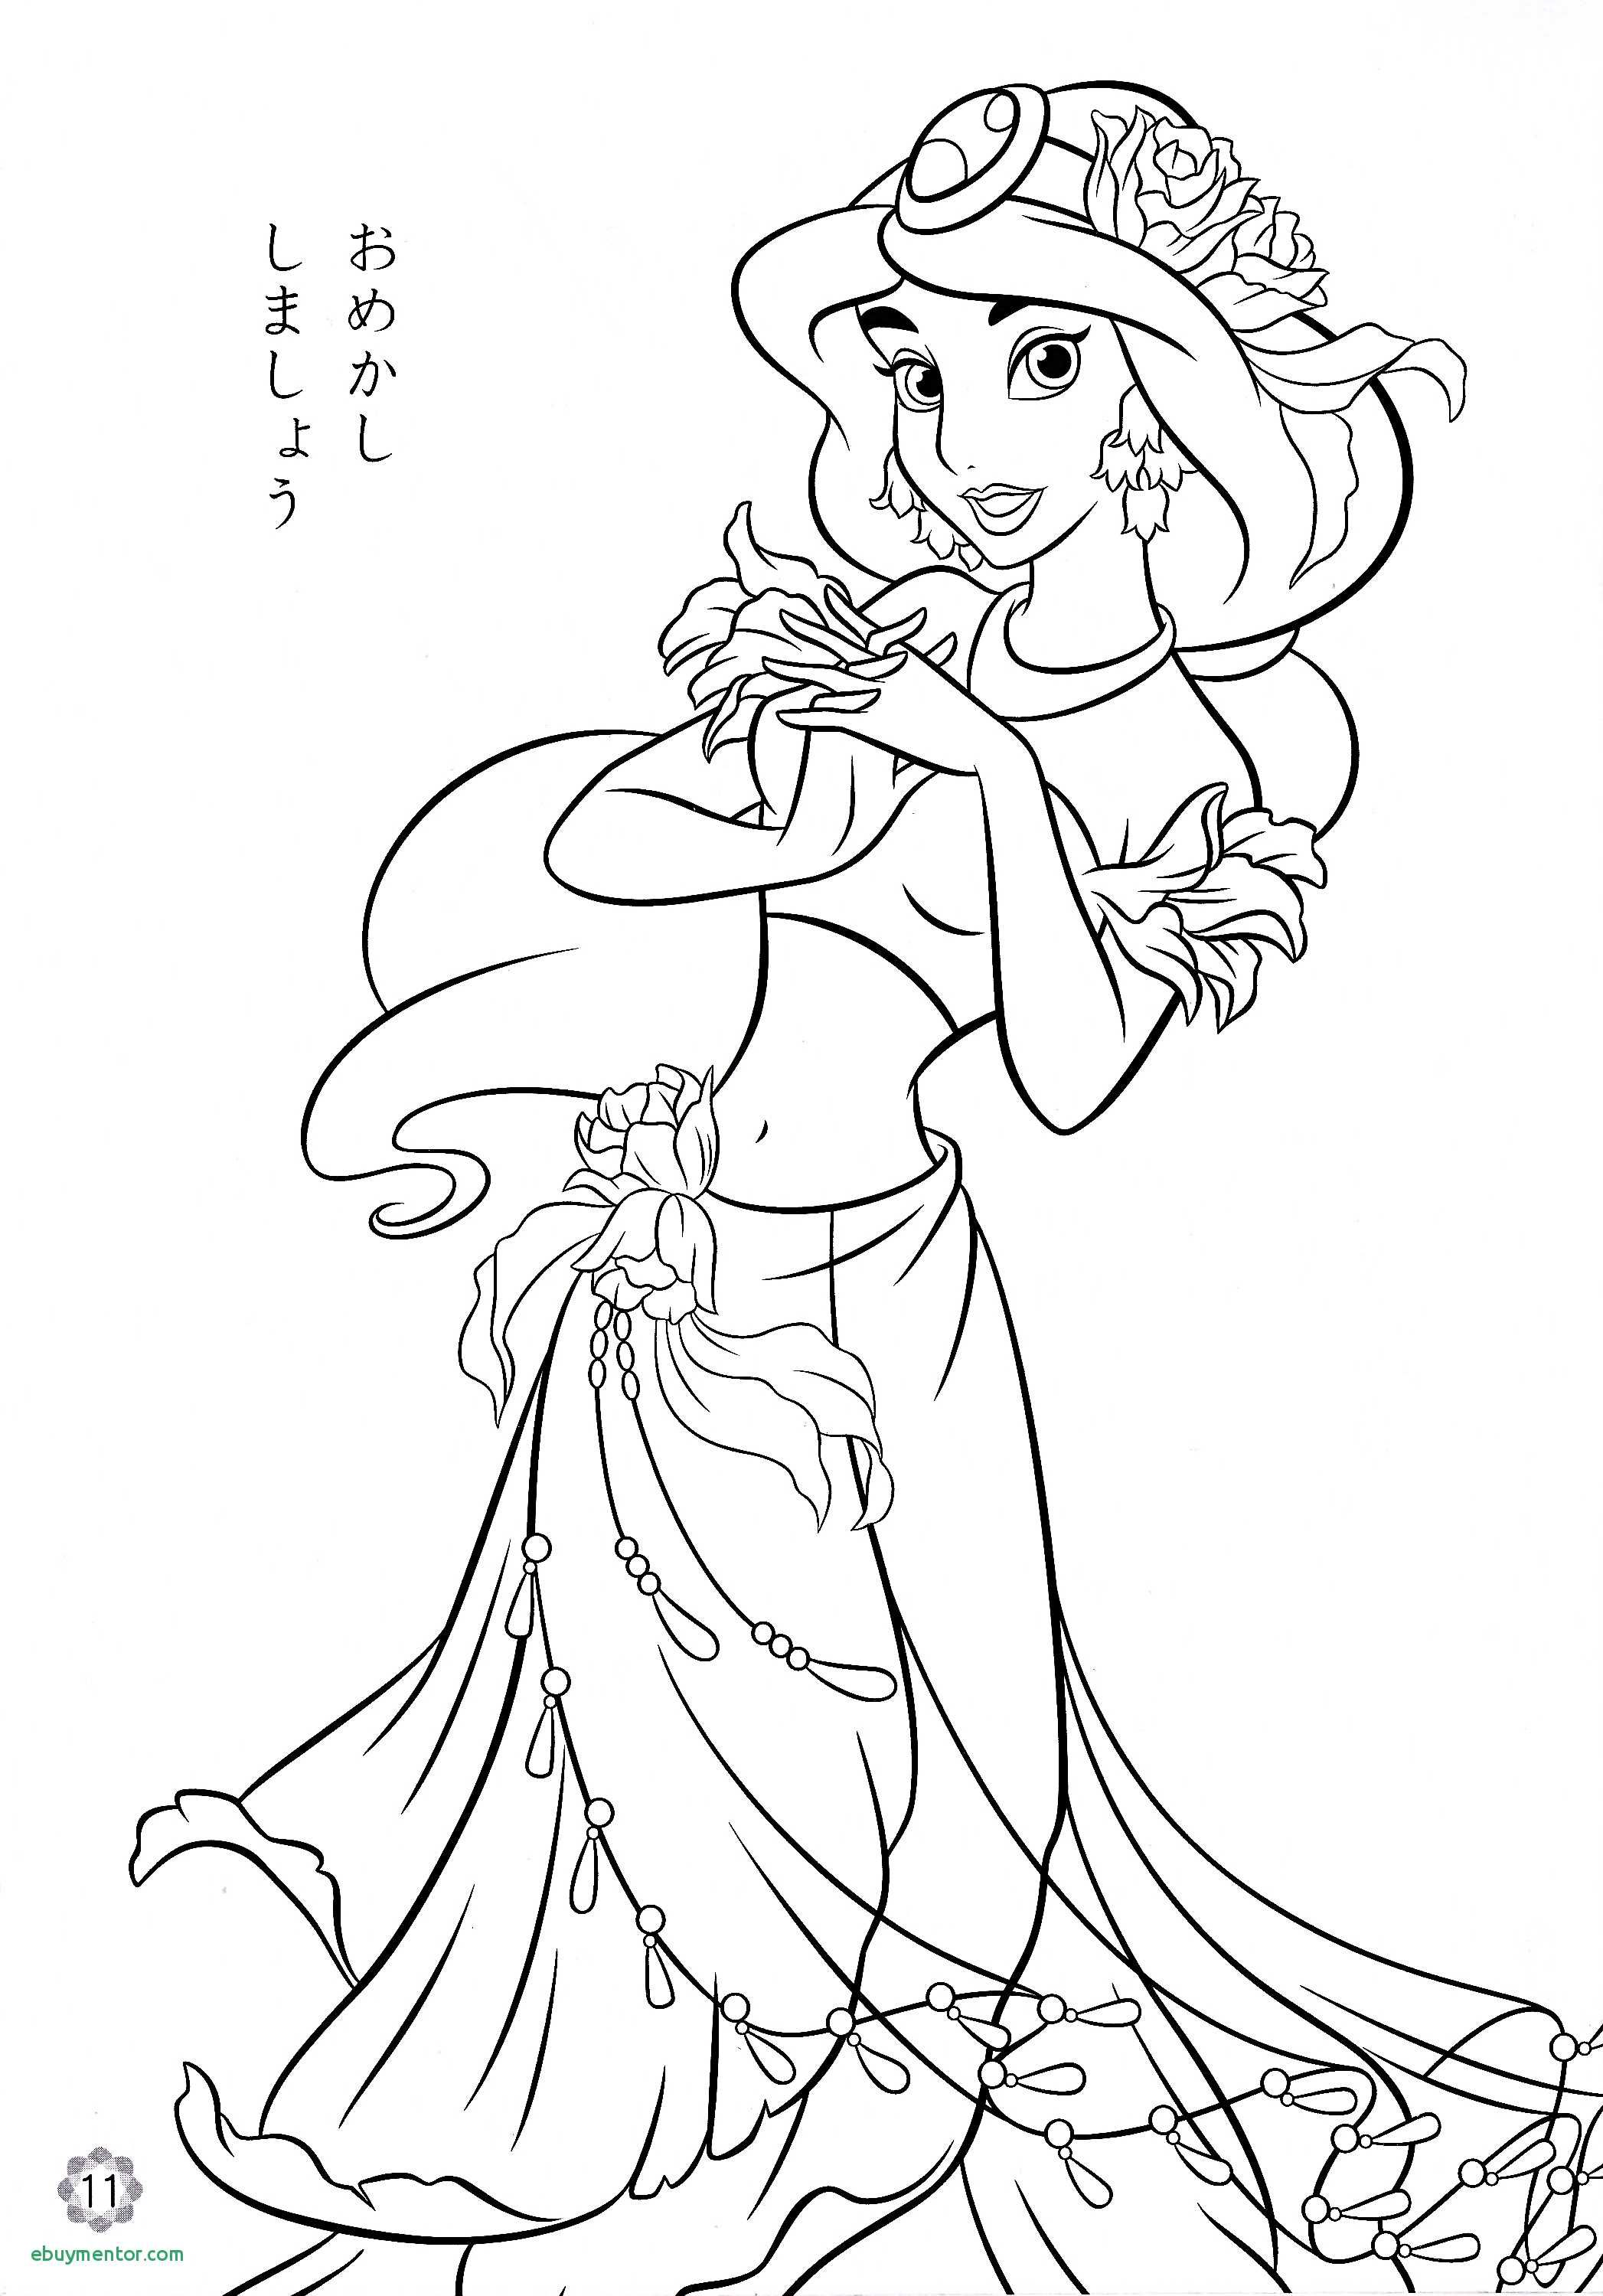 Disney Princess Coloring Pages 820 1060 Lovely Of Chibi Within Free Mermaid Coloring Pages Disney Princess Coloring Pages Rapunzel Coloring Pages